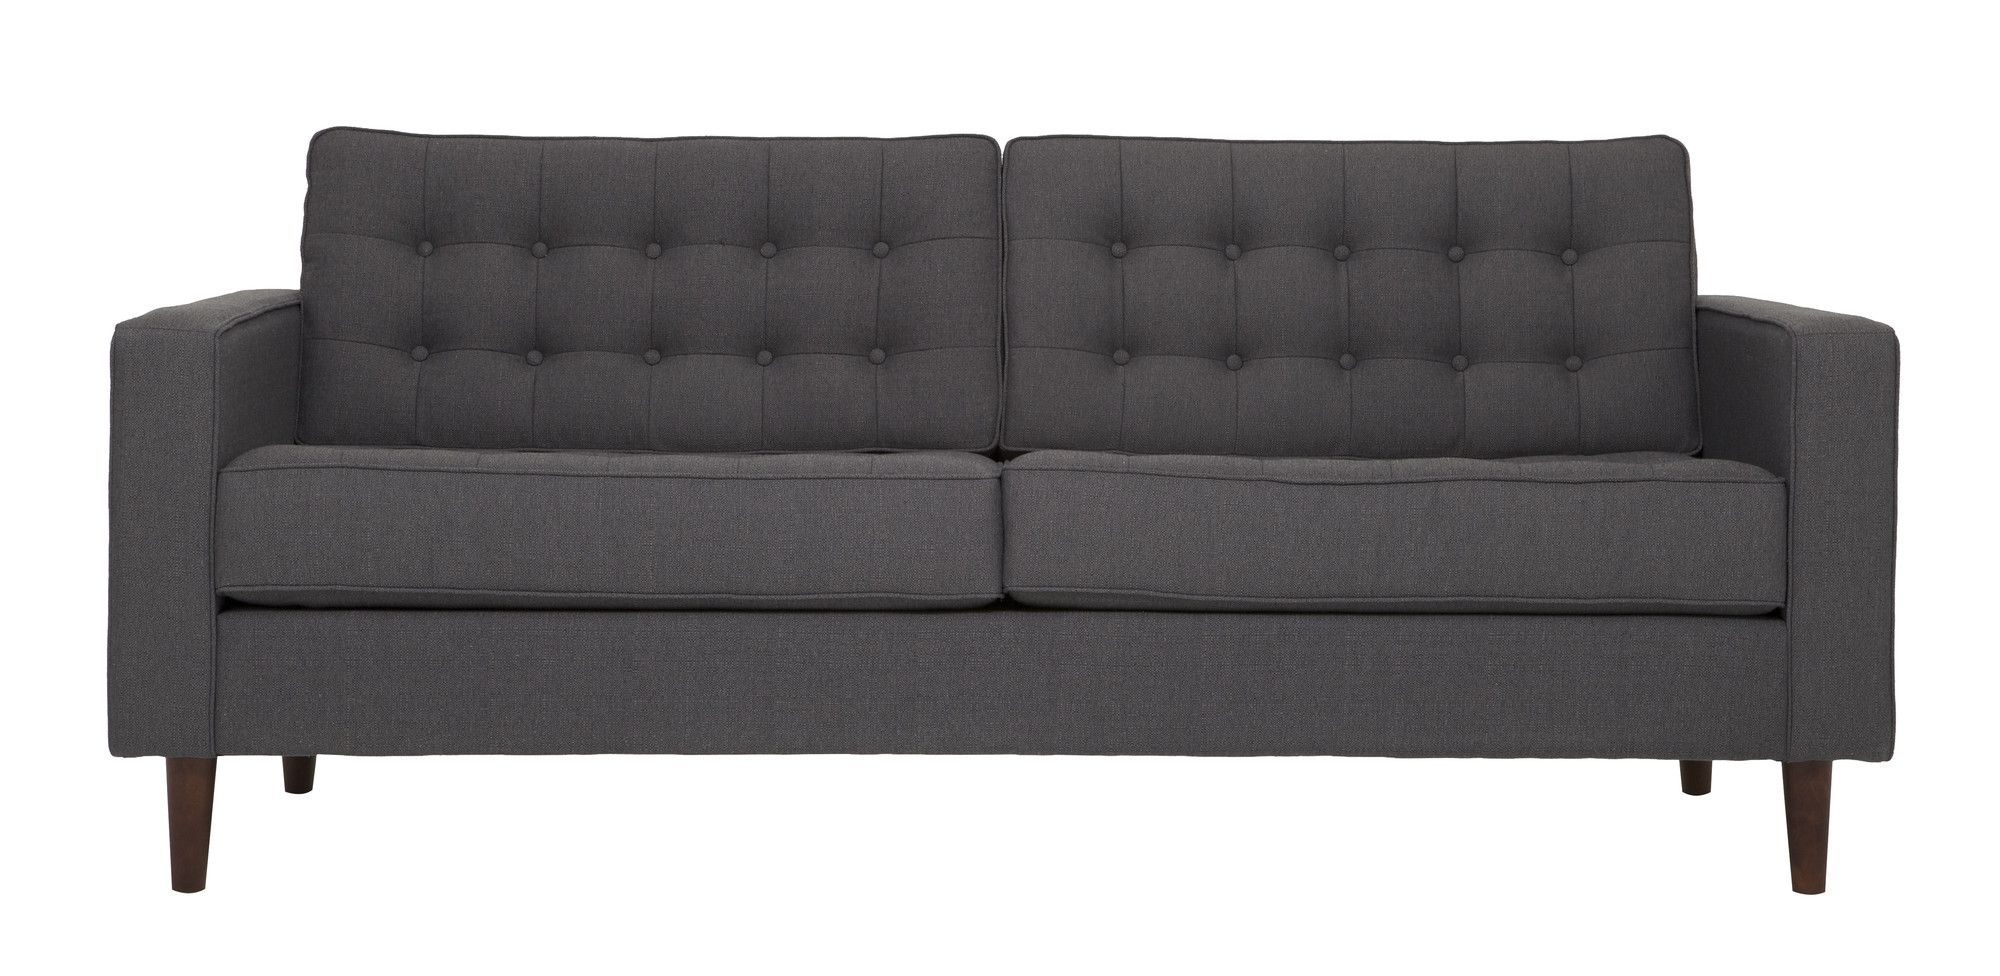 Aidan Tall Velvet Tufted Apartment Sofa Apartment Sofa Sofa Room